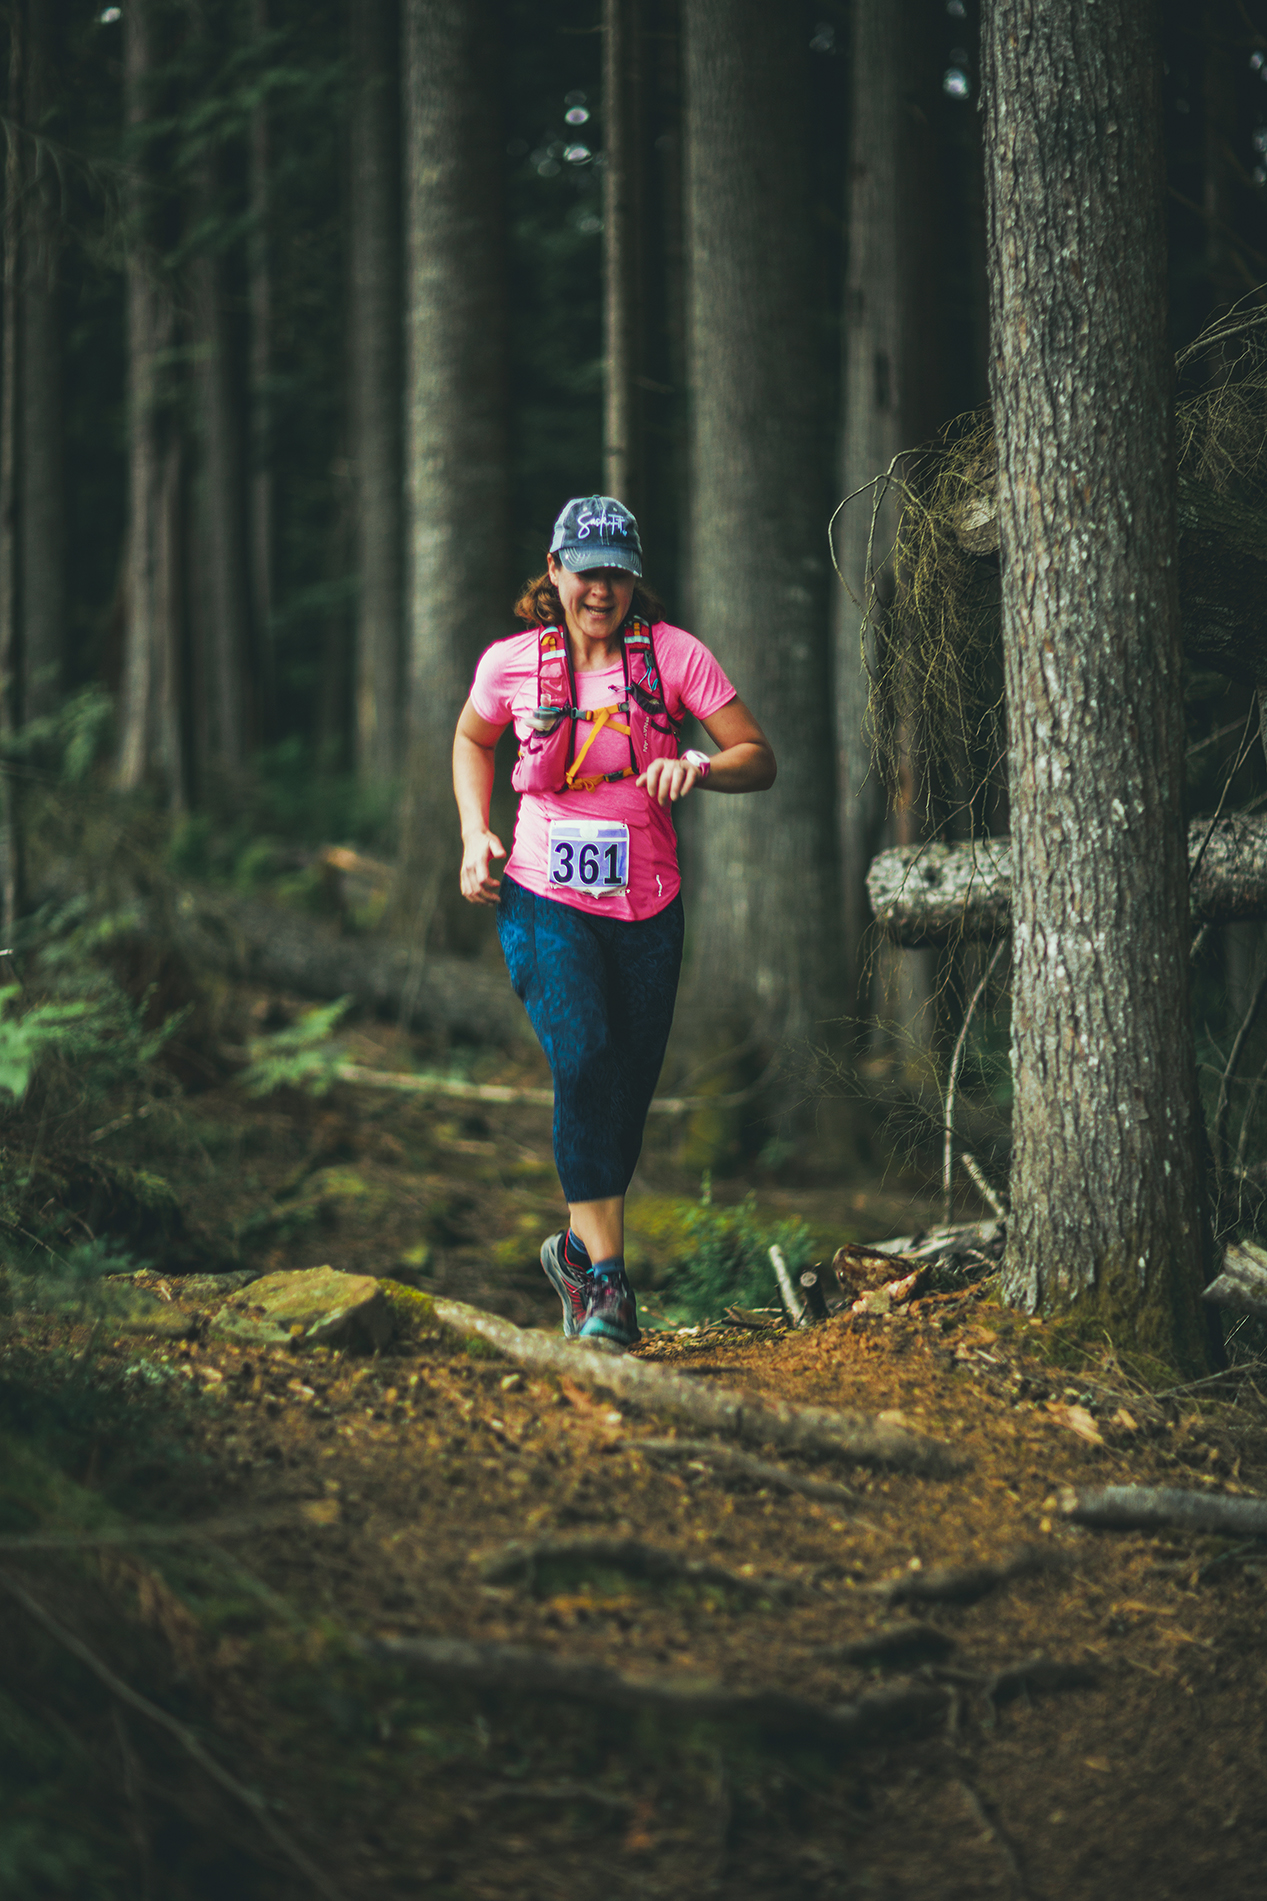 Fraser Valley Trail Races - Bear Mountain - IMG_2476 by Brice Ferre Studio - Vancouver Portrait Adventure and Athlete Photographer.jpg